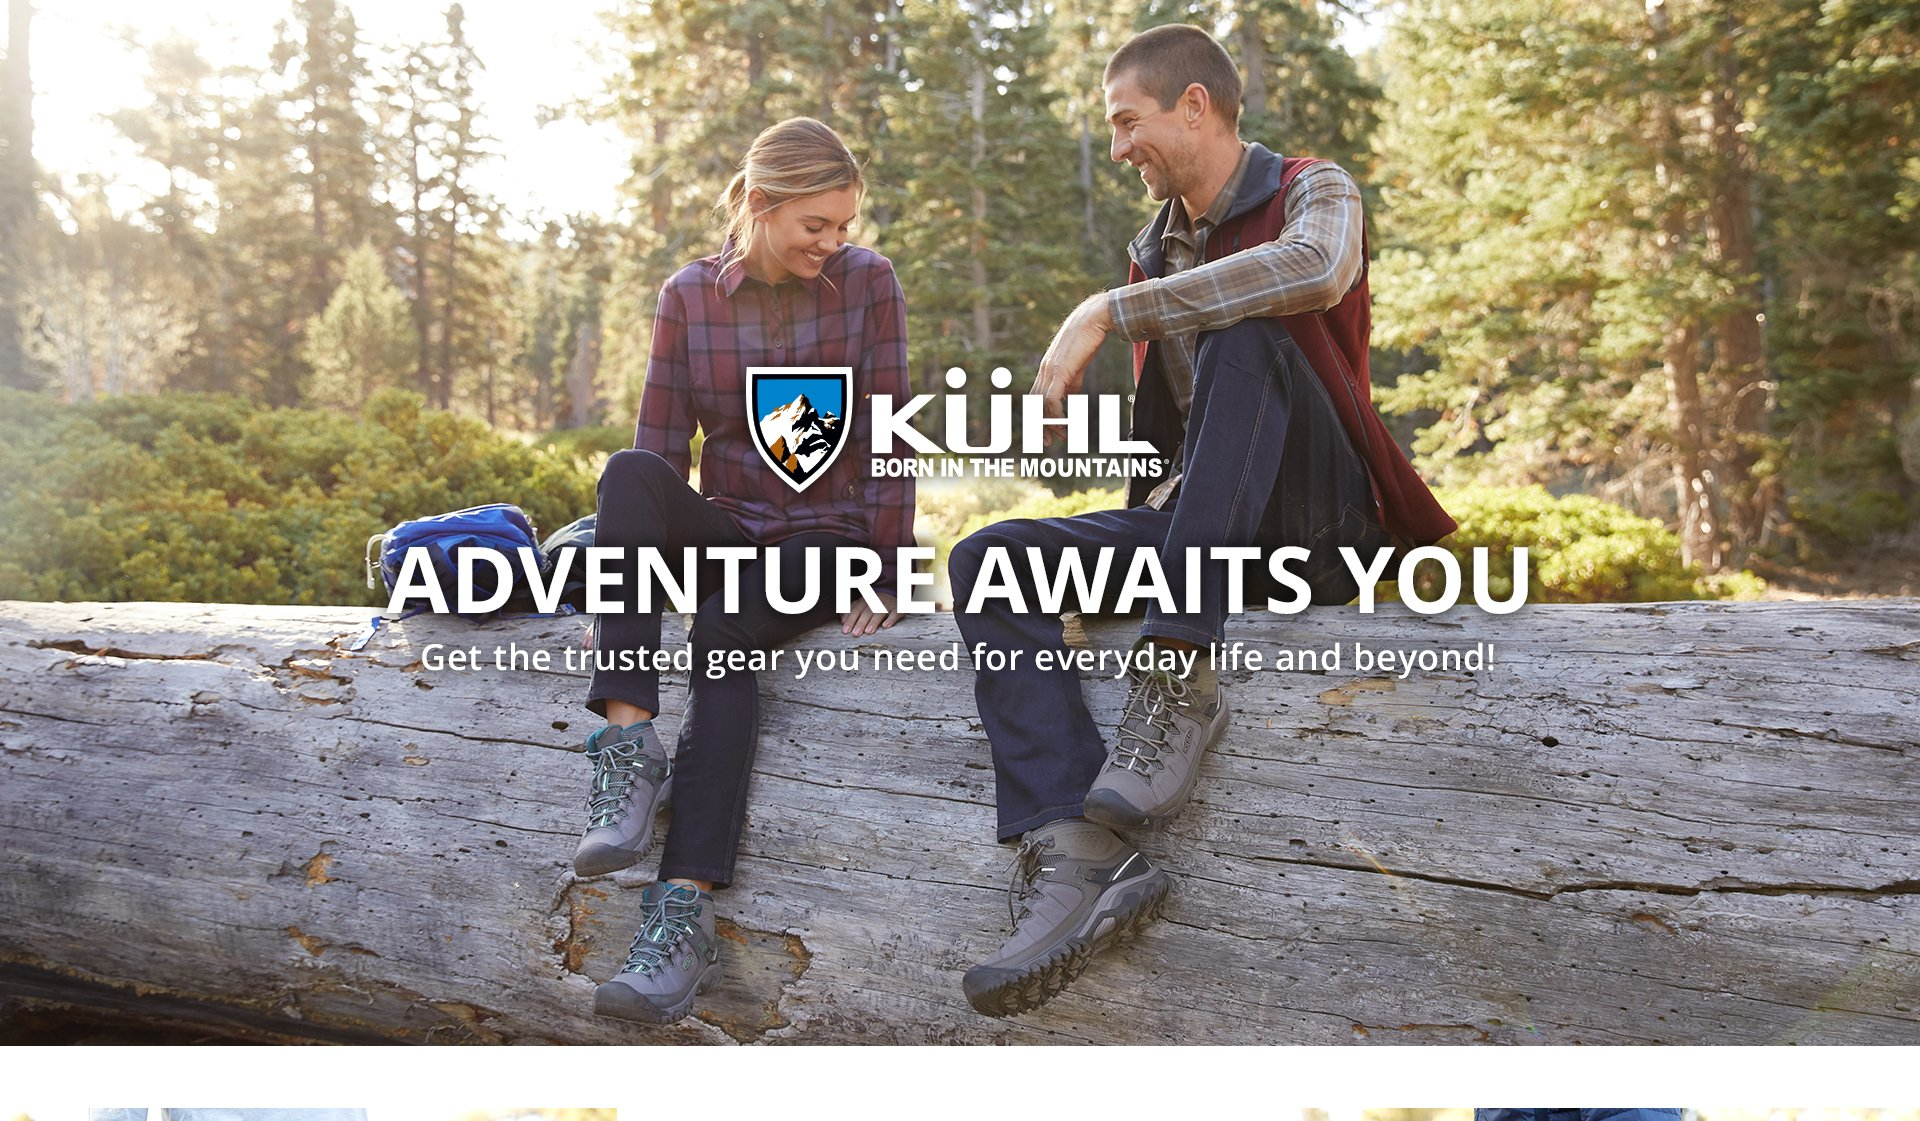 Kuhl Header. Adventure awaits you. Get the trusted gear you need for everyday life and beyond!